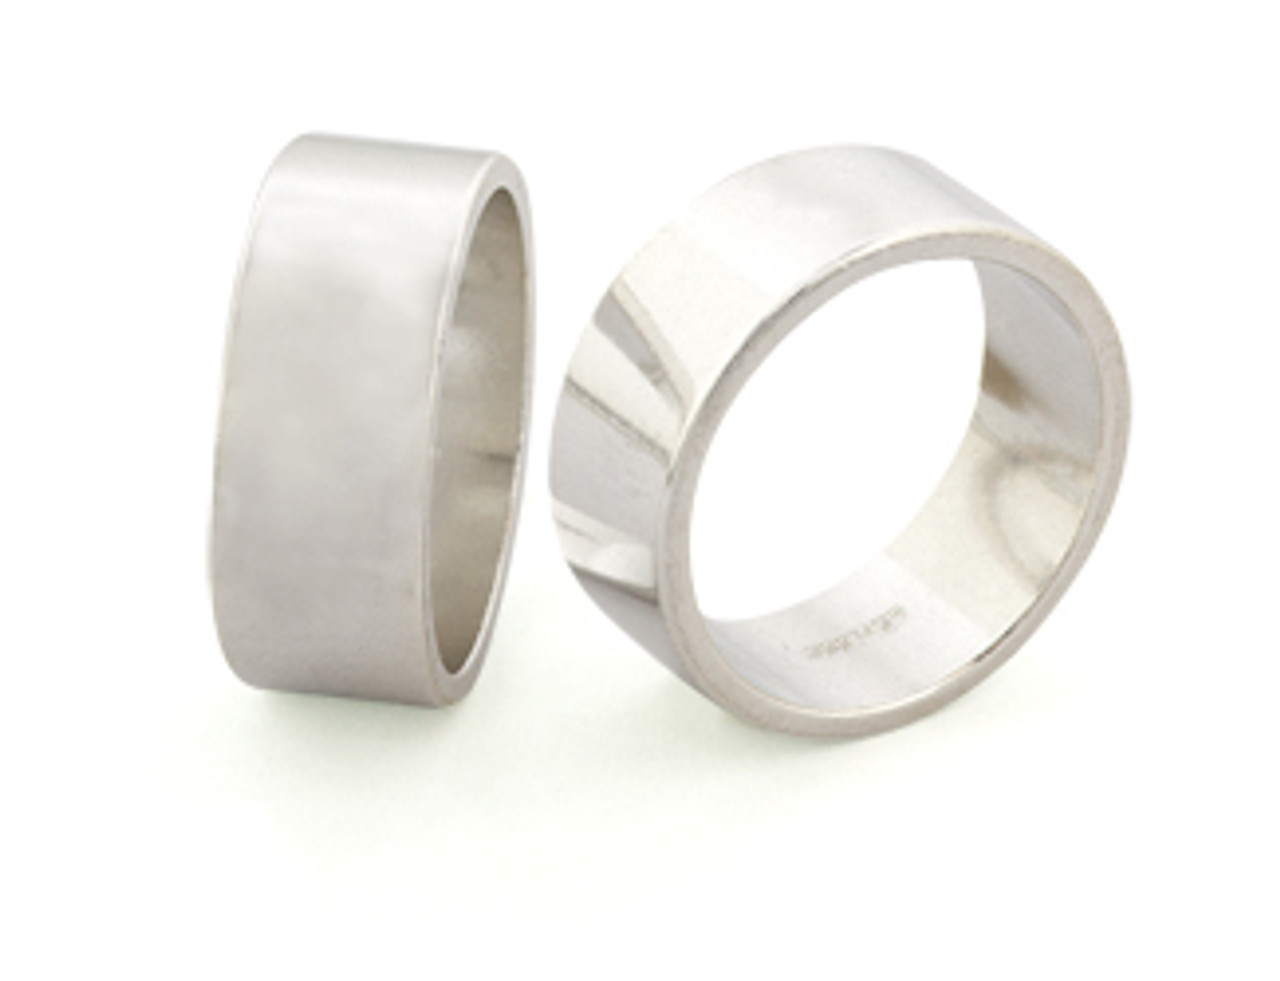 8mm Wide Ring Band - Size 8